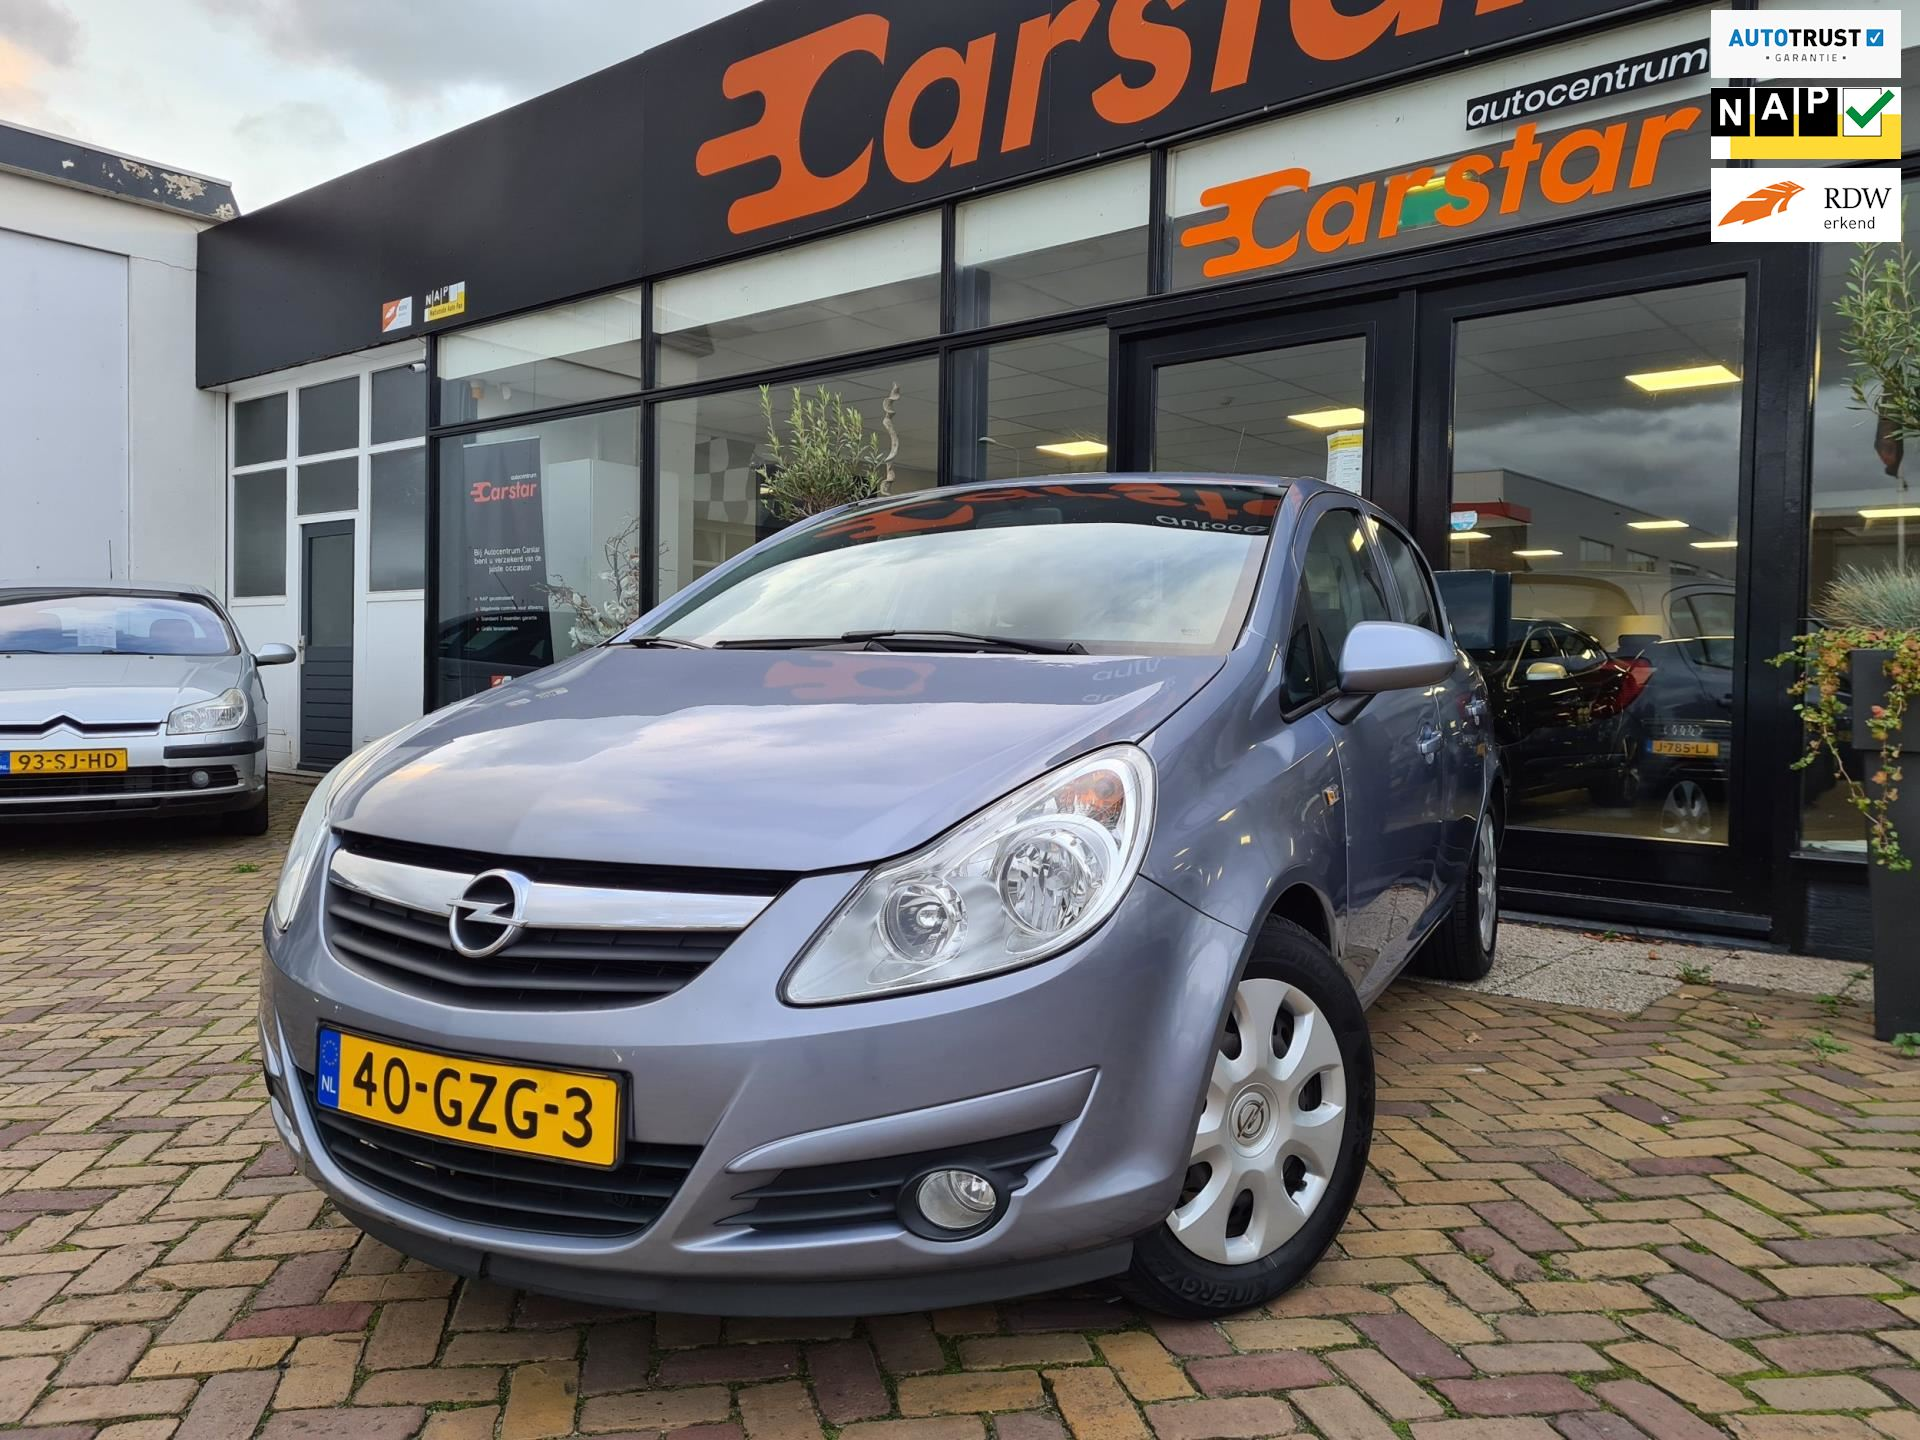 Opel Corsa occasion - Carstar